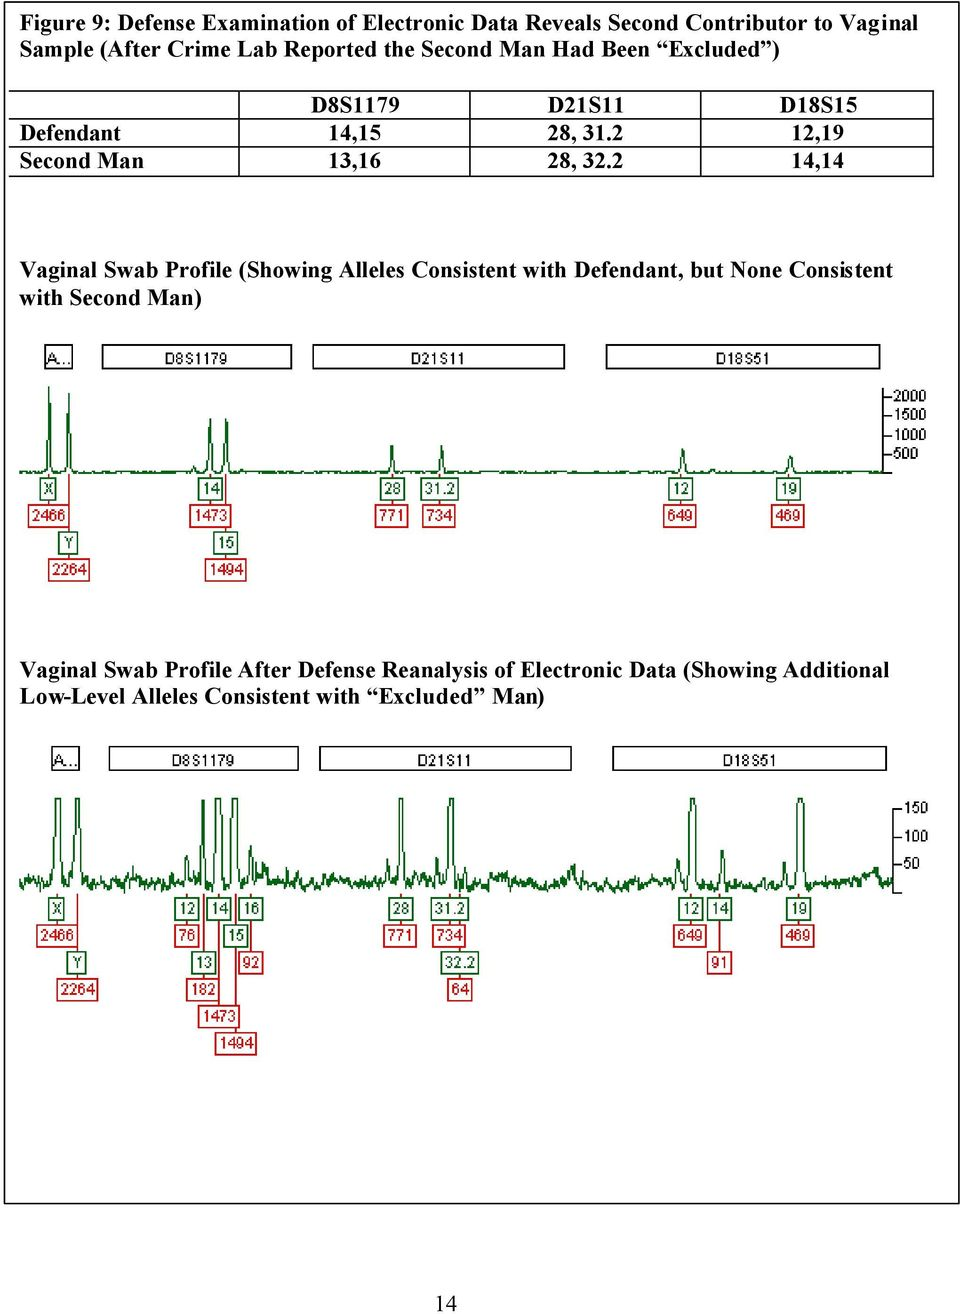 2 14,14 Vaginal Swab Profile (Showing Alleles Consistent with Defendant, but None Consistent with Second Man) Vaginal